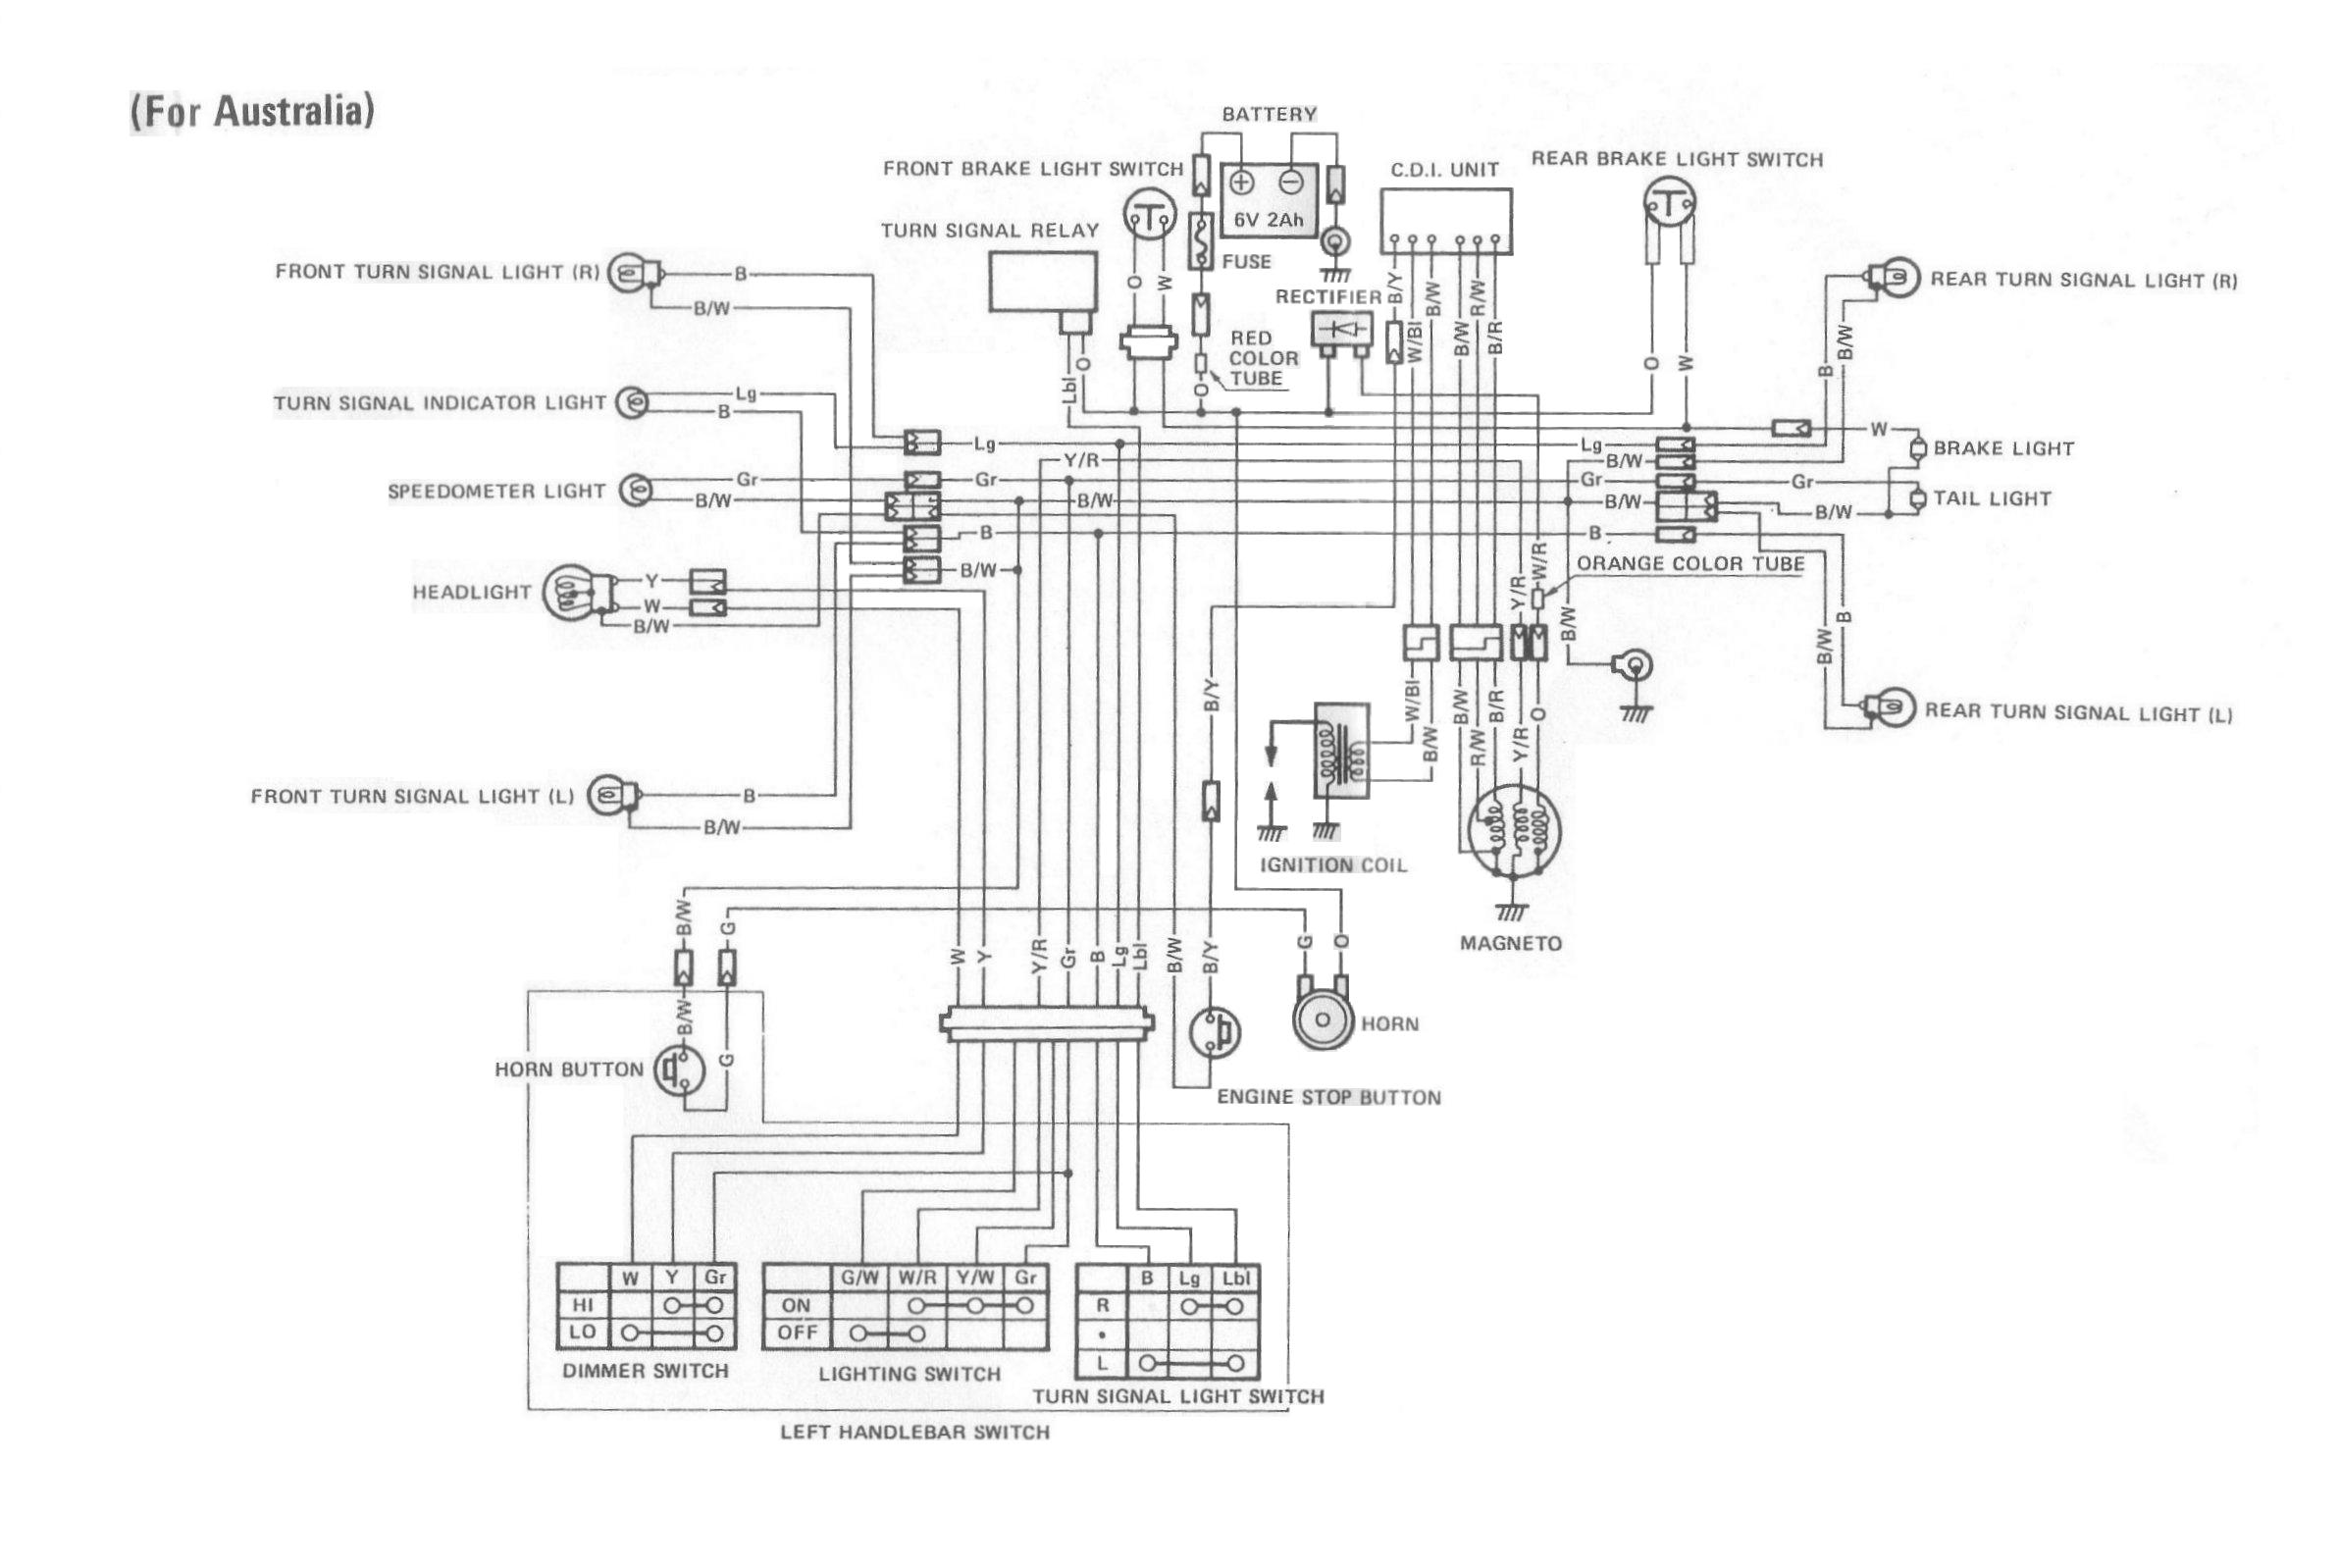 Suzuki Gt550 Engine Diagram. Suzuki. Auto Wiring Diagram